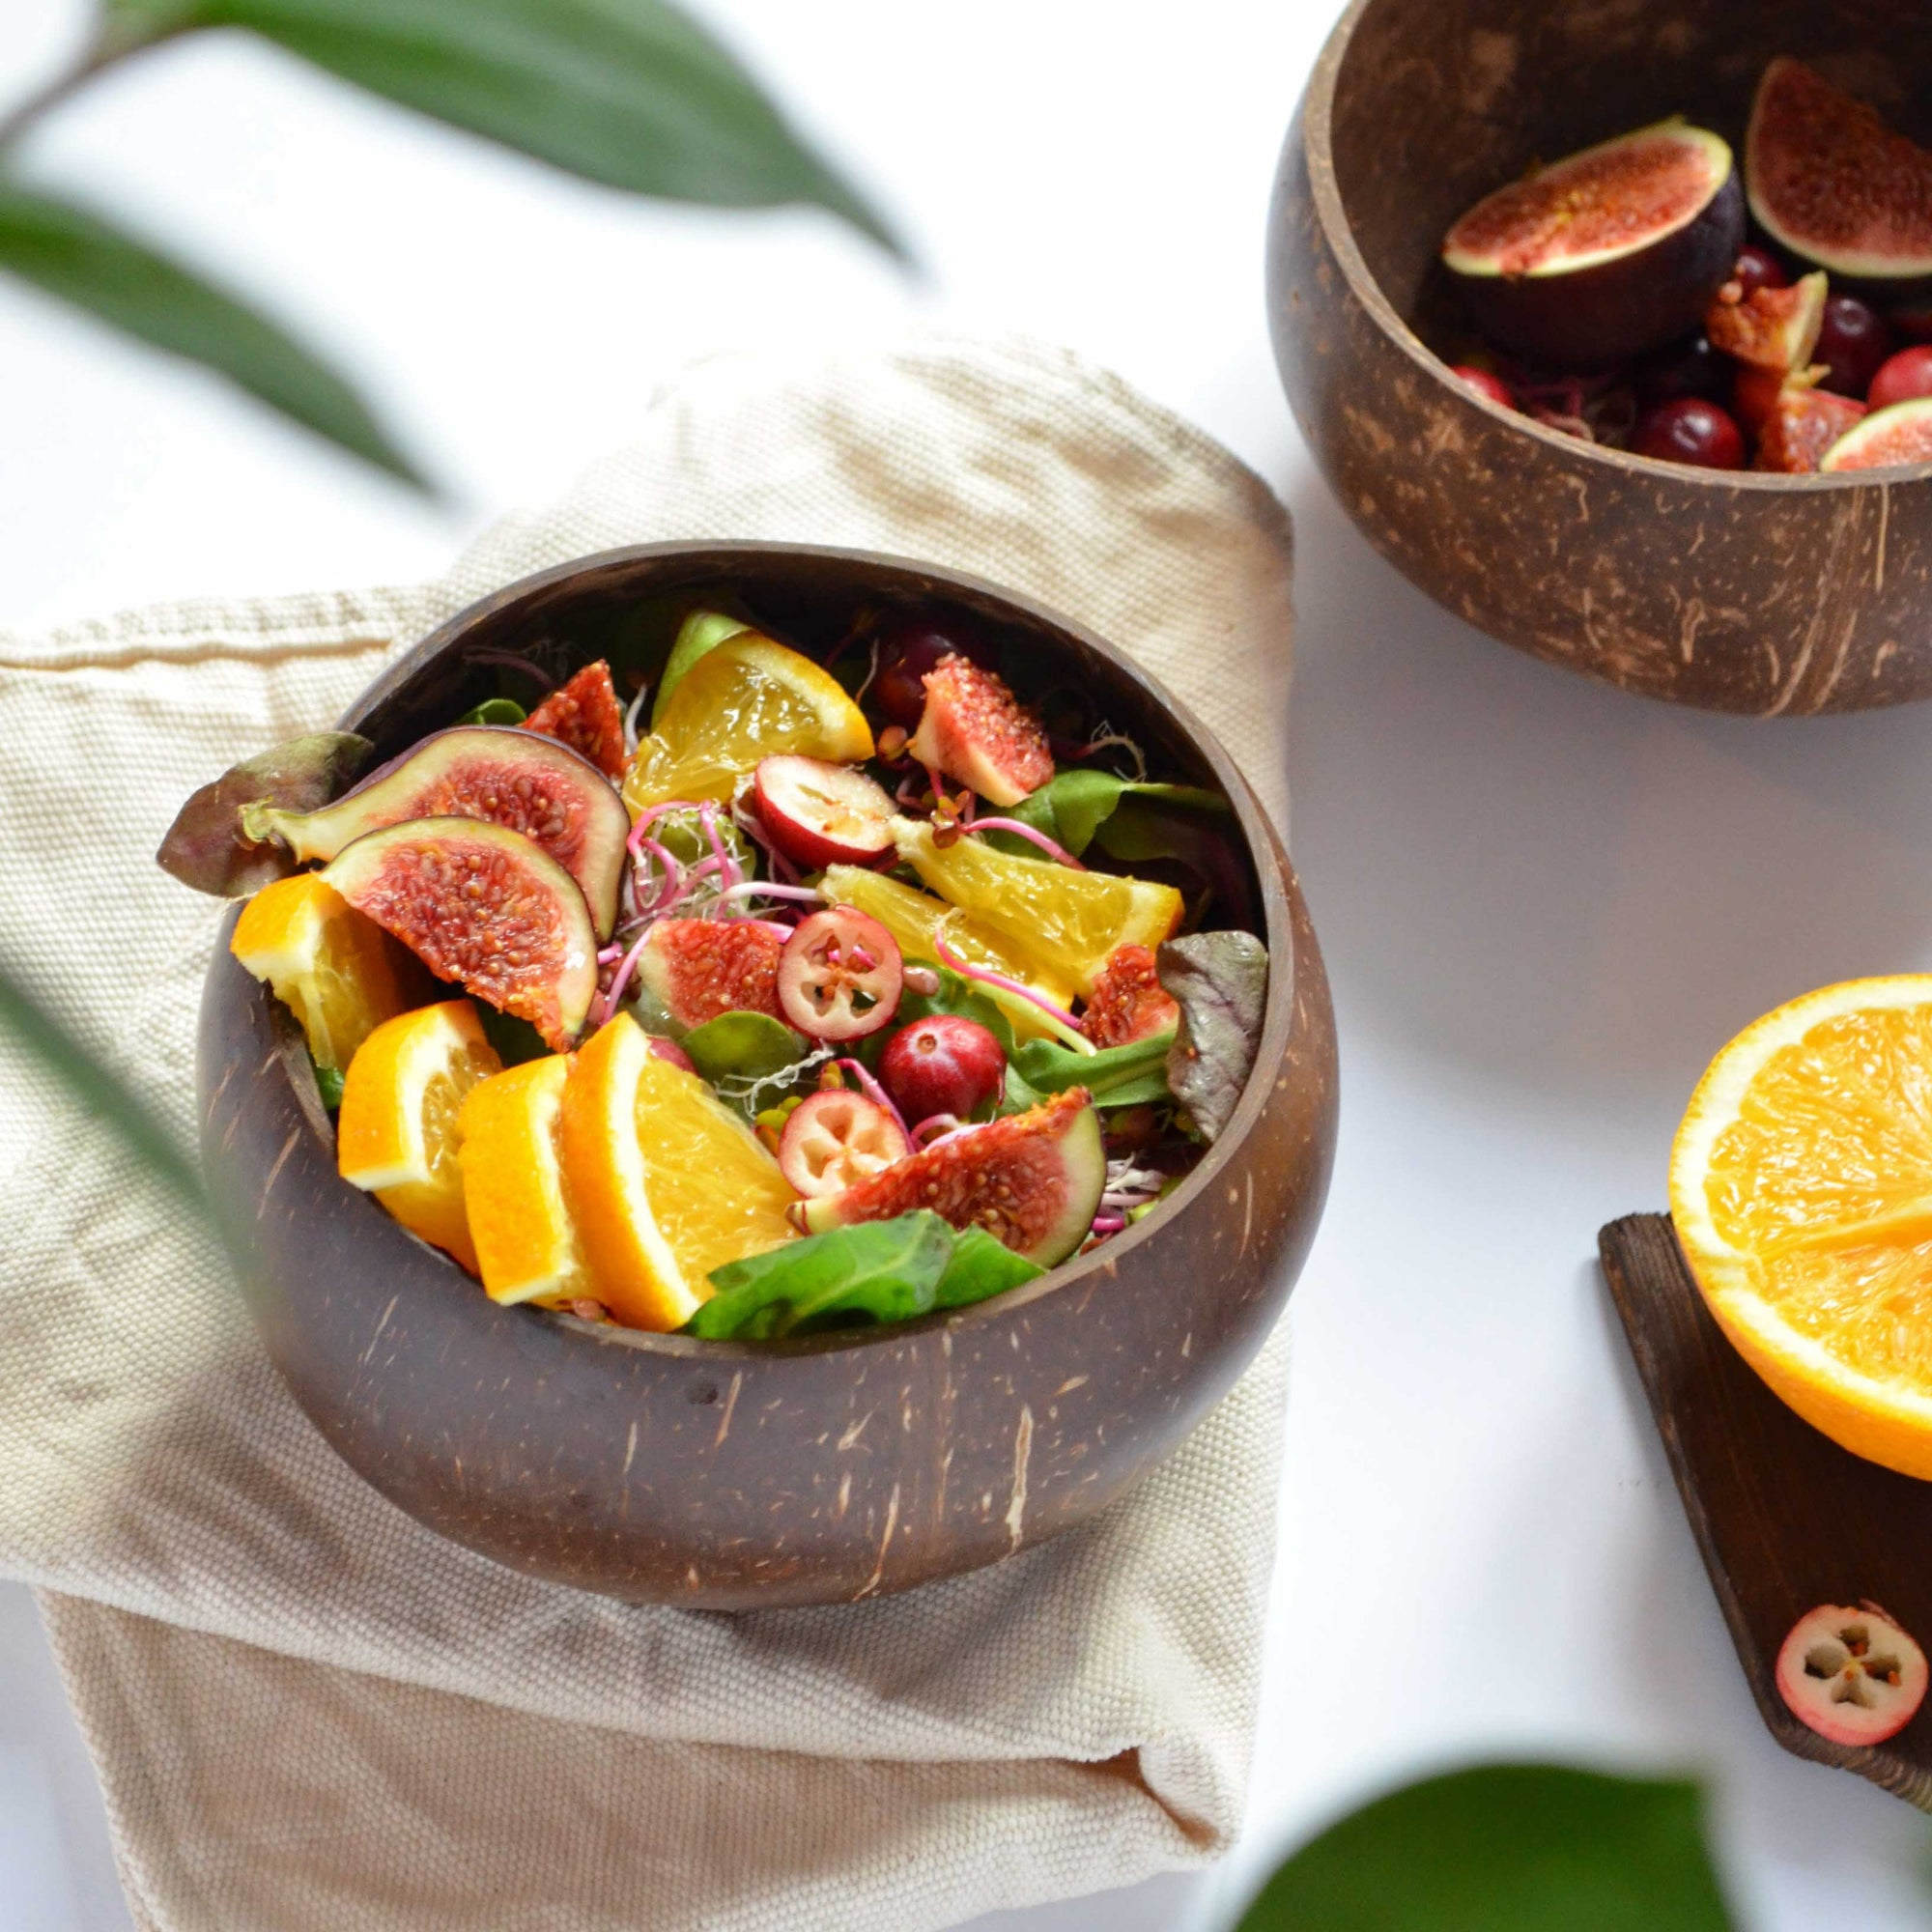 Orange Salad with Figs